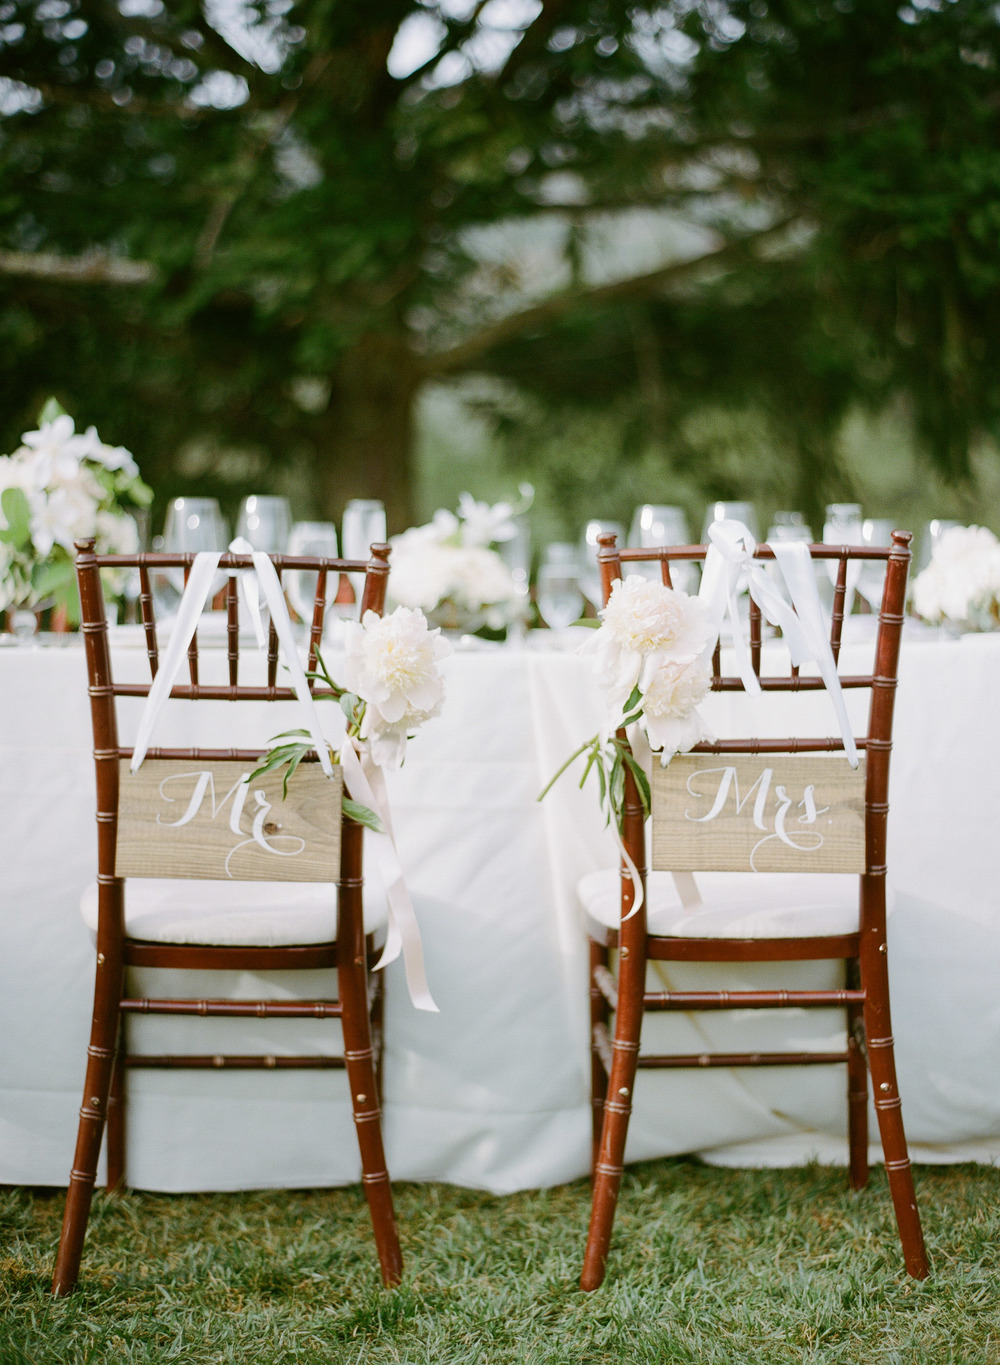 The couple's seats at the ceremony are decked out with Mr. & Mrs. signs and ethereal floral designs; photo by Sylvie Gil